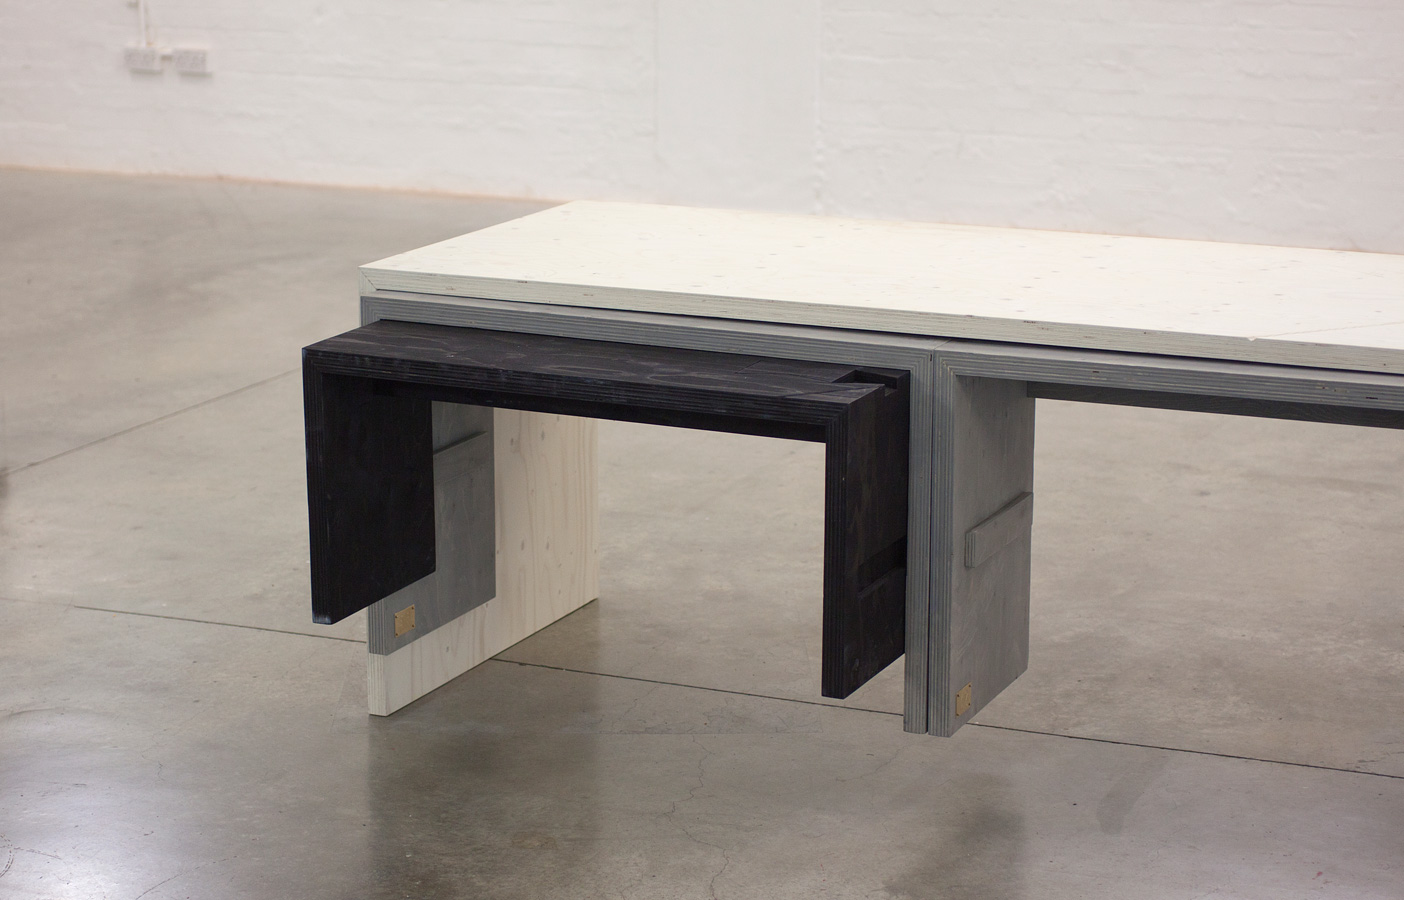 Aldworth James & Bond | Nesting Table for Build at LDF - seat, bench and 'mother' table